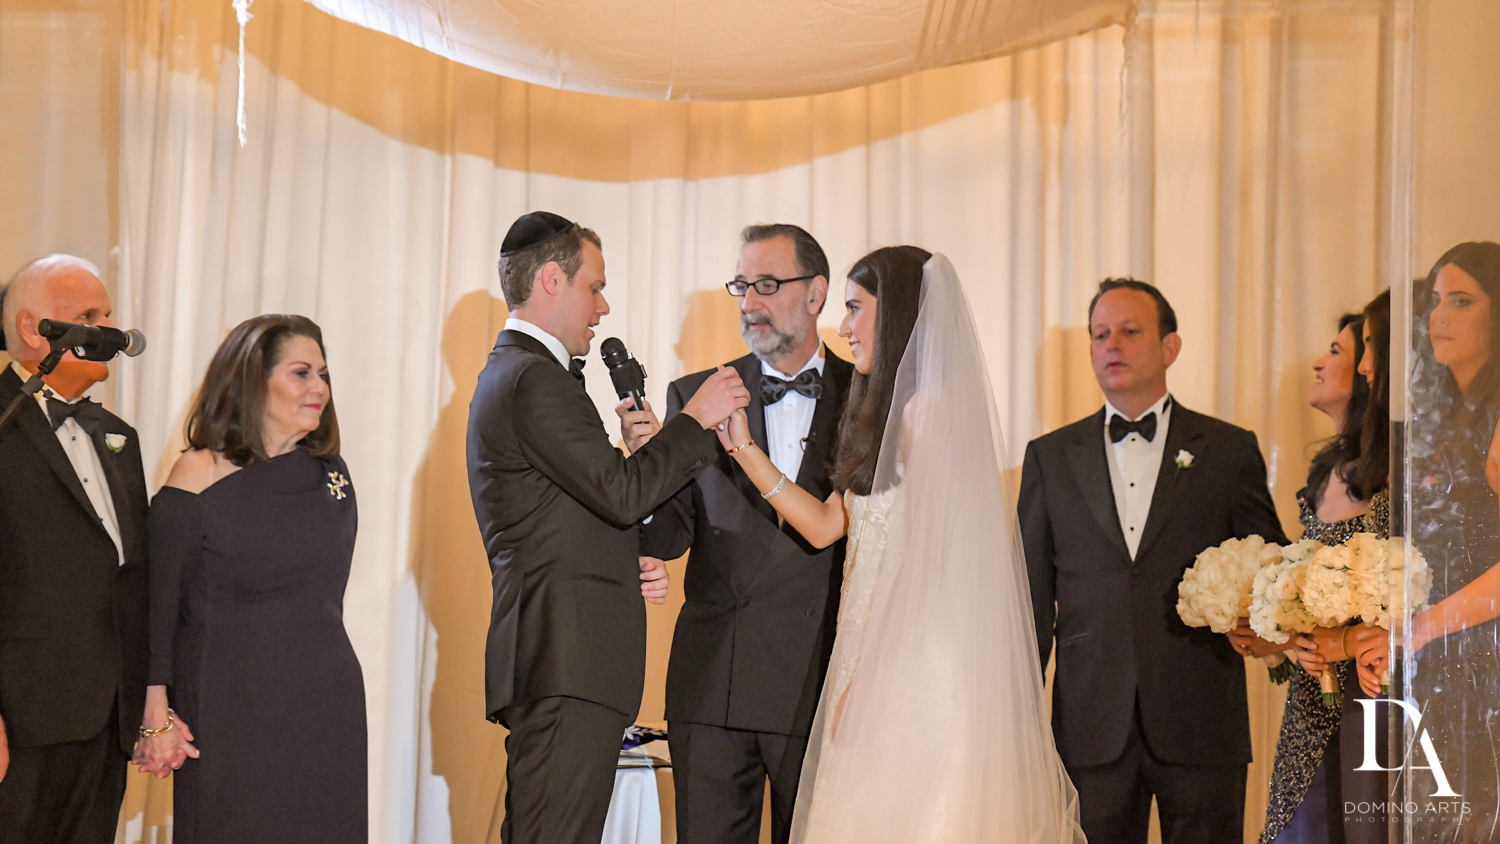 ring ceremony at A Ritz Carlton Wedding in Key Biscayne by Domino Arts Photography